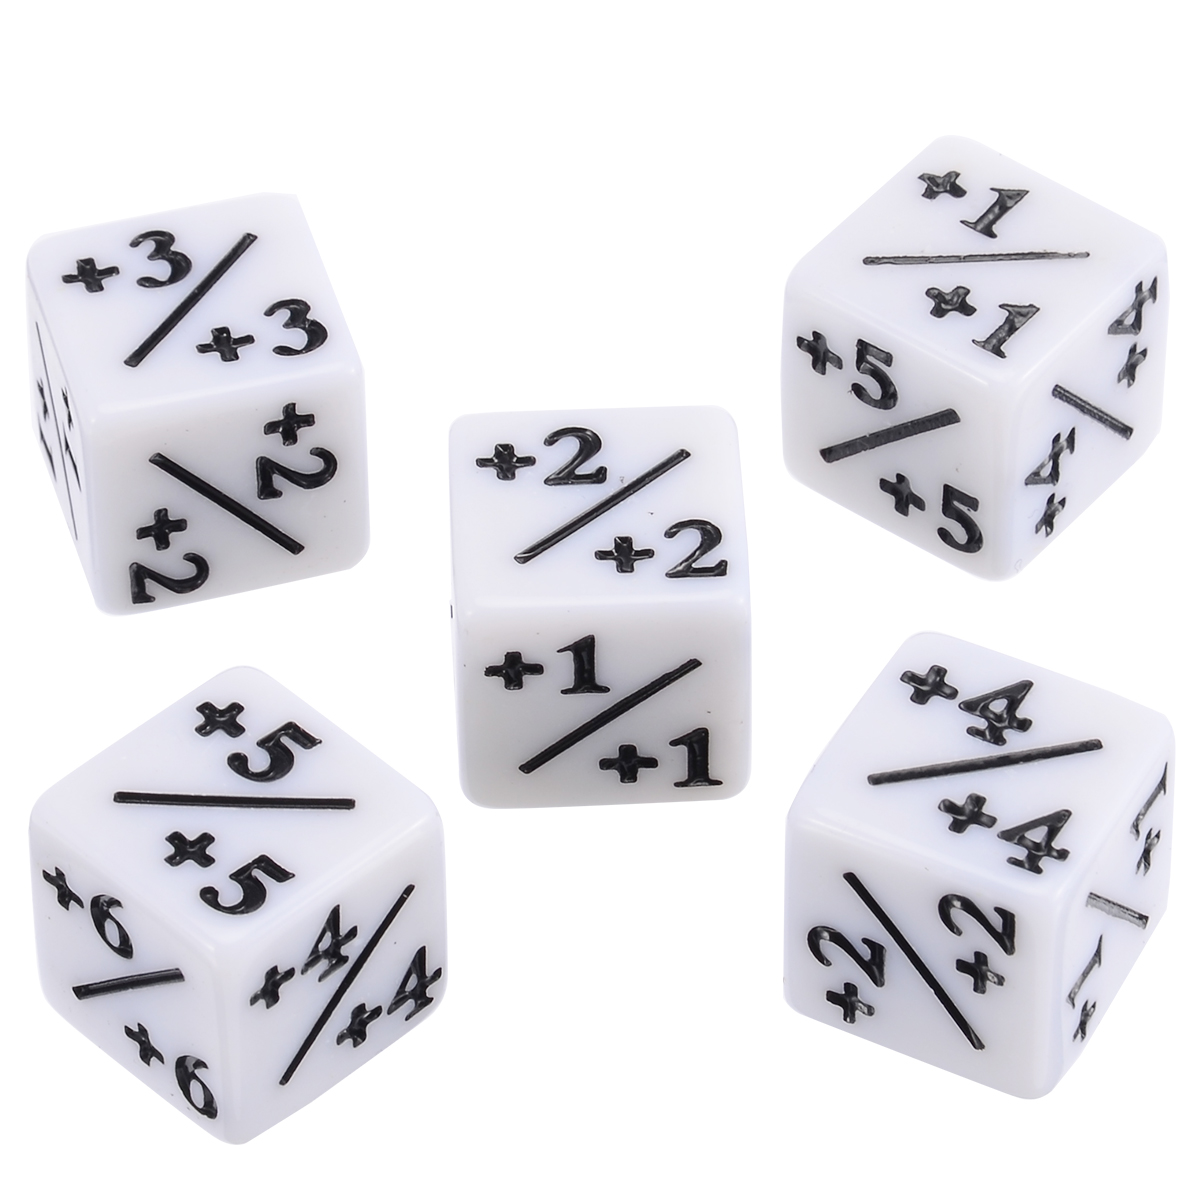 5pcs Negative 1 1 Dices White Dice Counters For Magic Gaming The Gathering MTG Games Interesting Outdoor Party Activities Tool in Dice from Sports Entertainment